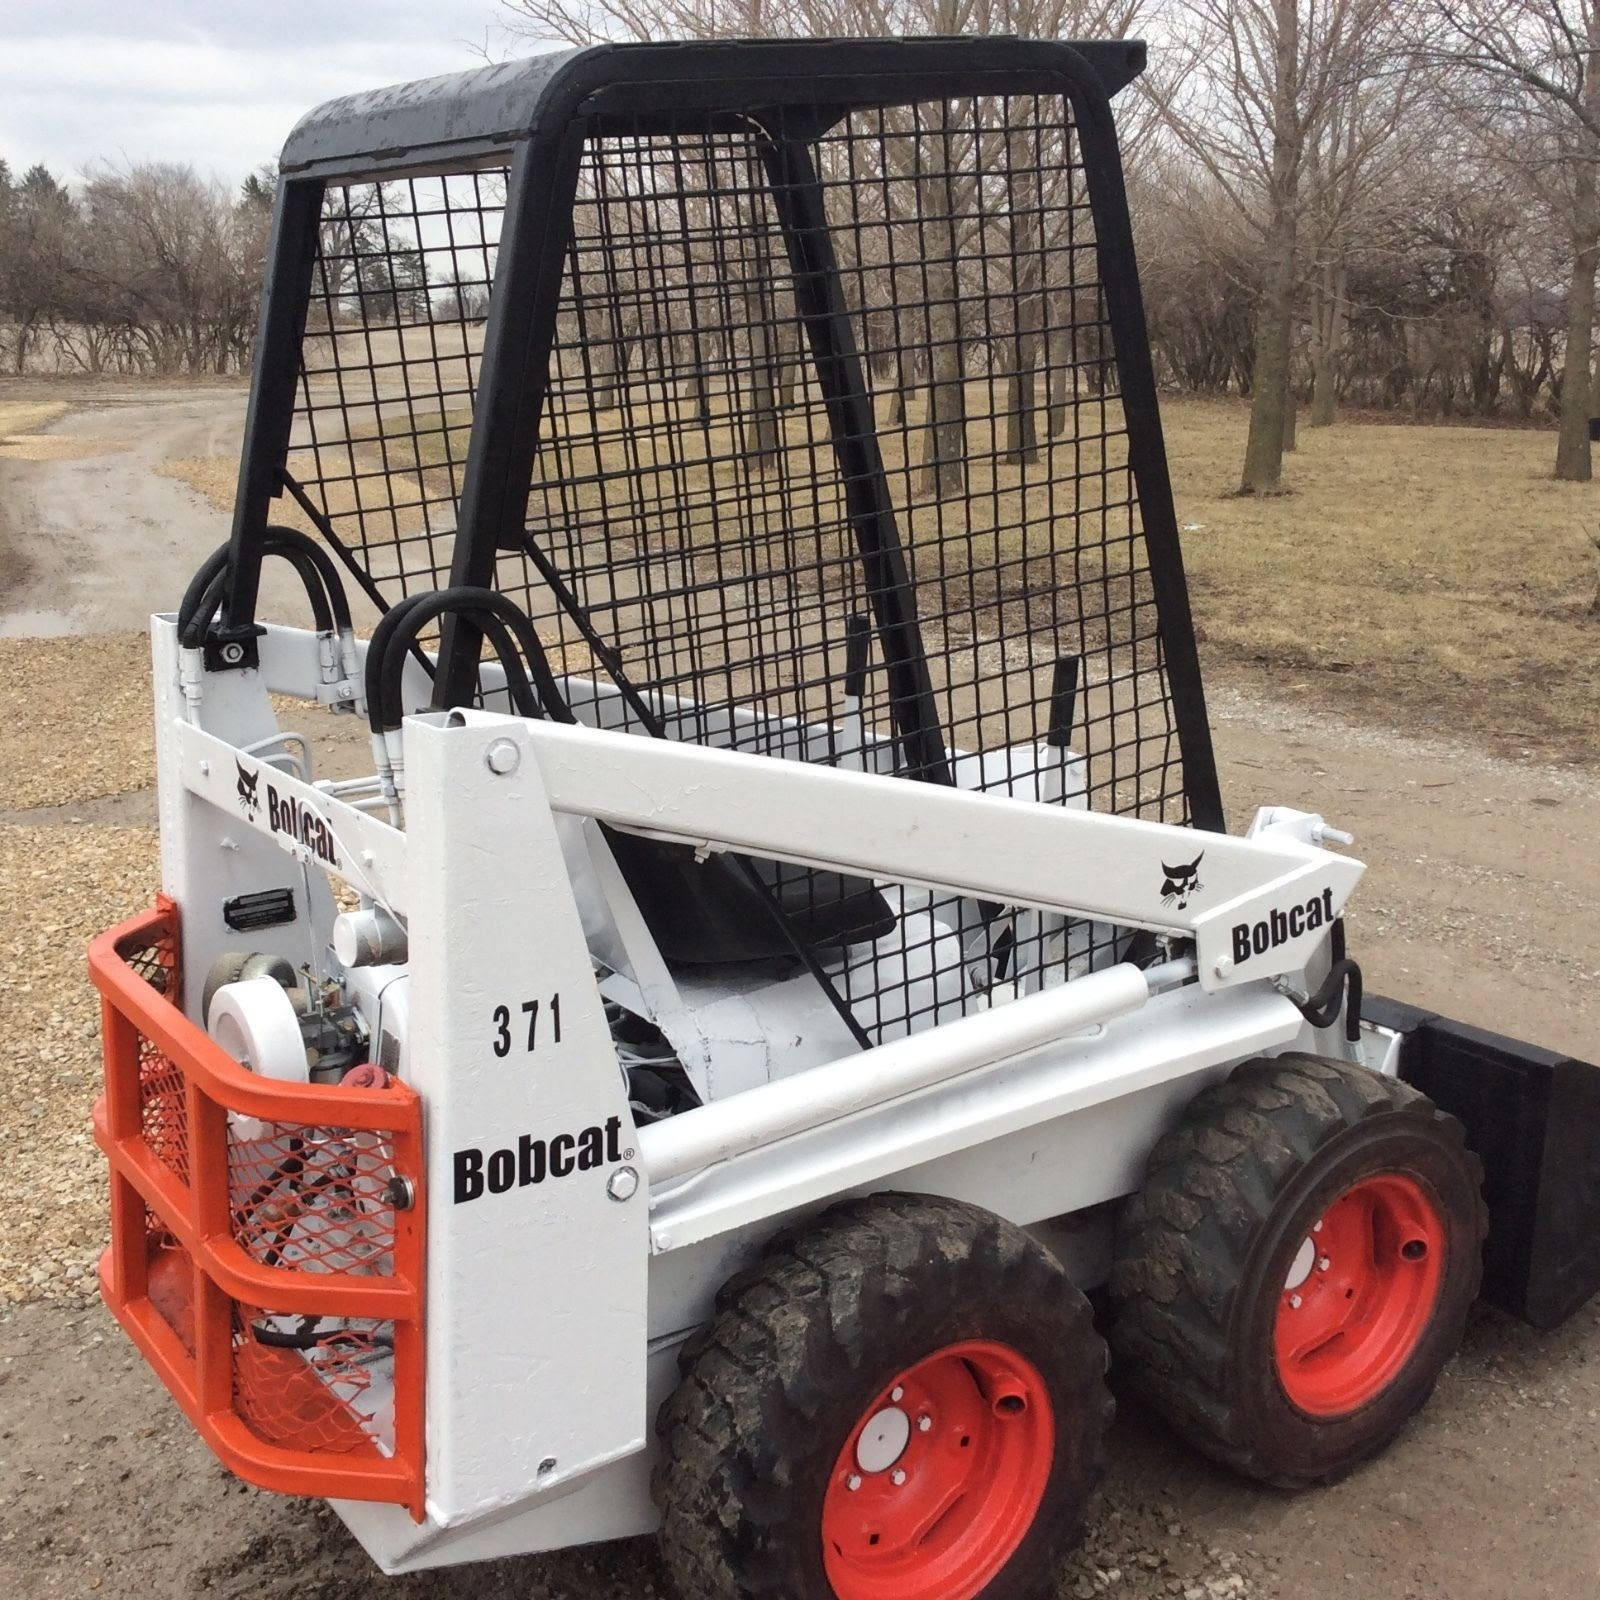 Bobcat 371 Skid Steer Attachments Specifications